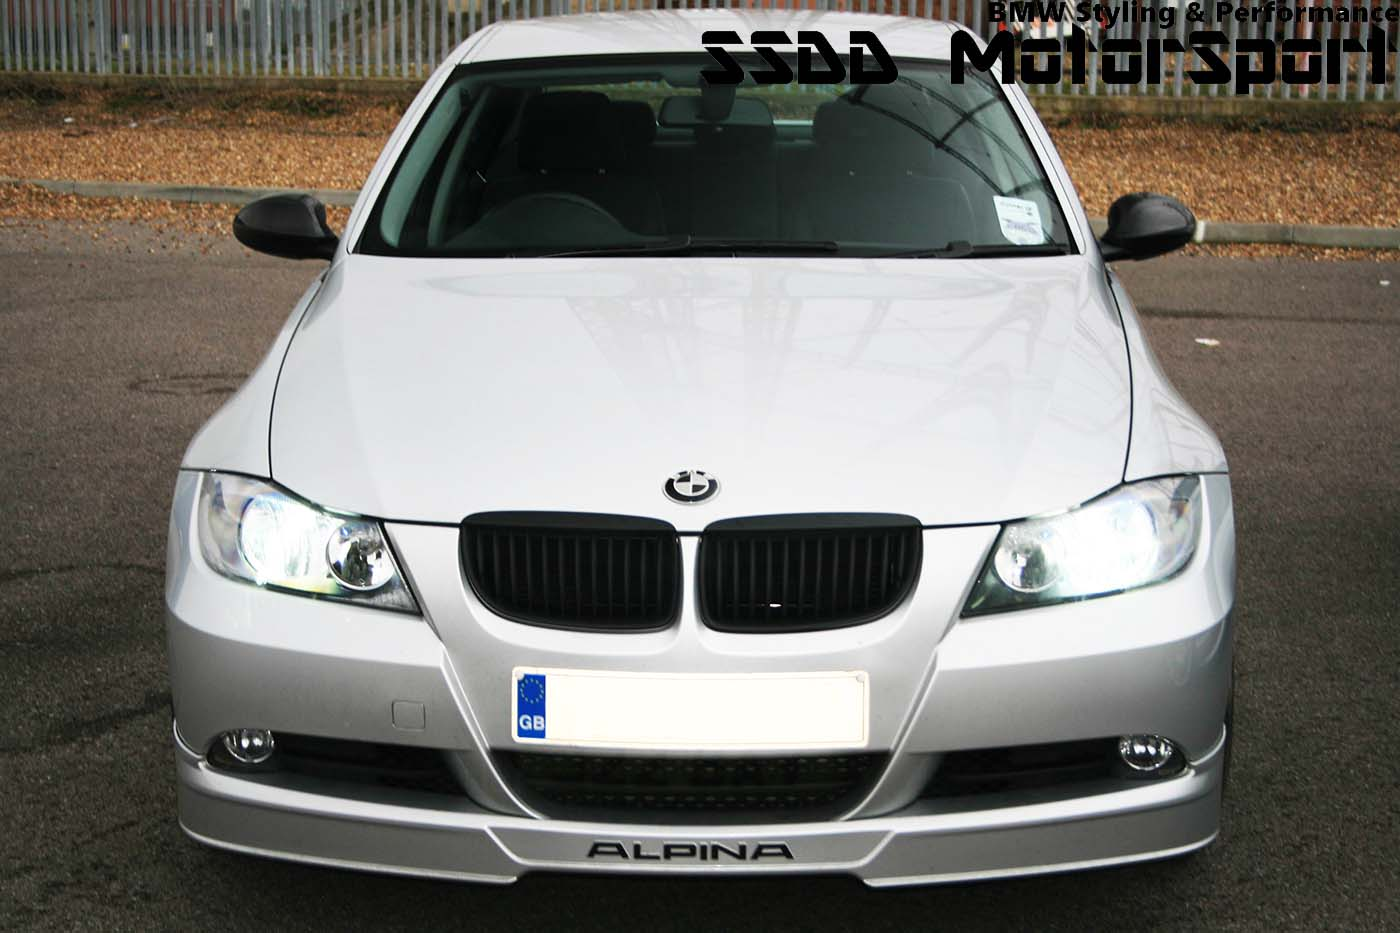 RENNESSIS BMW Xenon HID Kit | Plug and Play Error Free | H1 H4 H7 HB4/9006  D1S D2S